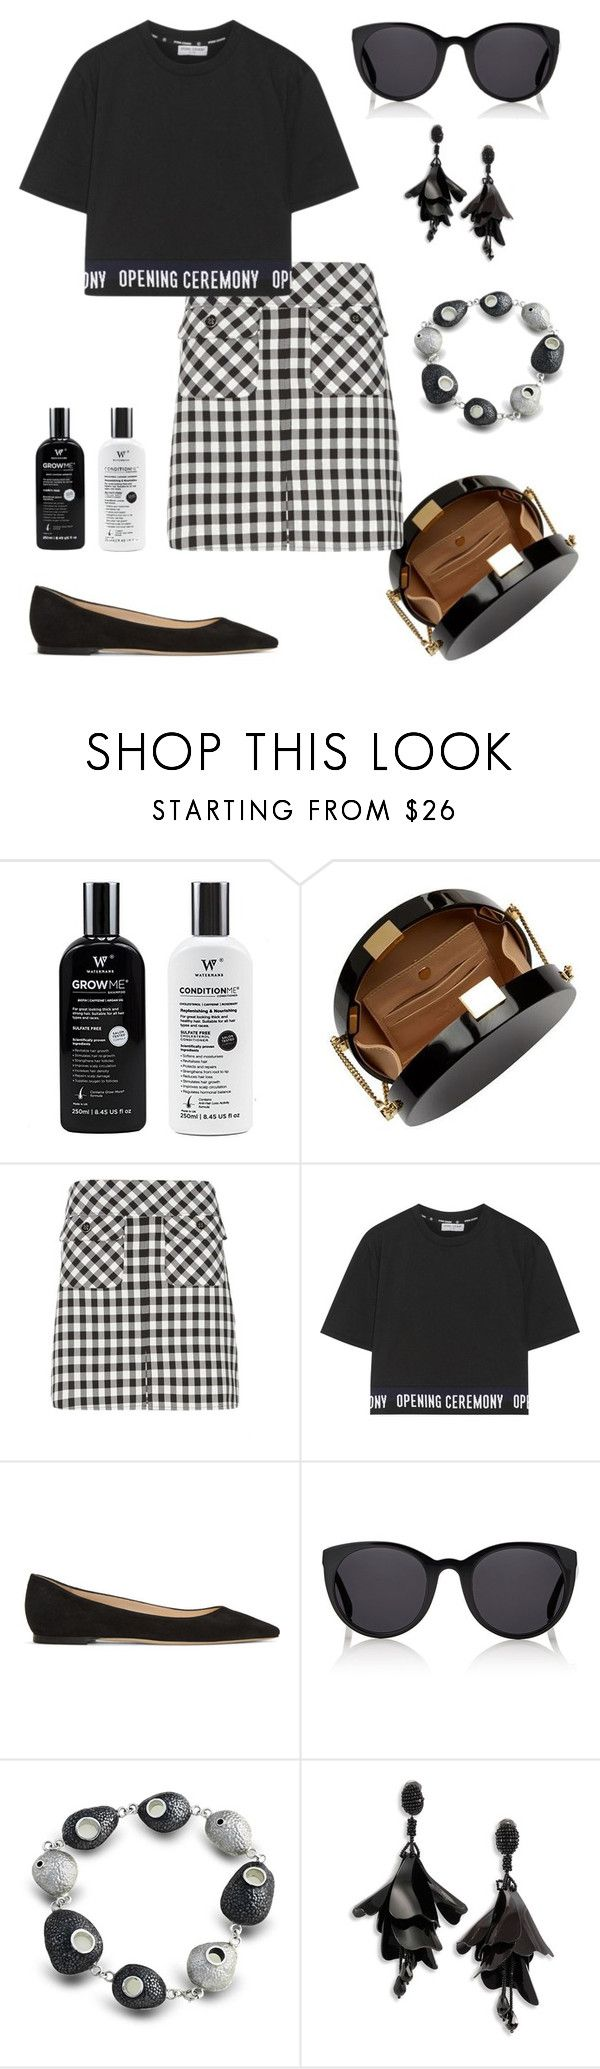 """""""Open!"""" by gatocat ❤ liked on Polyvore featuring Elie Saab, Dorothy Perkins, Opening Ceremony, Jimmy Choo, Finlay & Co. and Oscar de la Renta"""